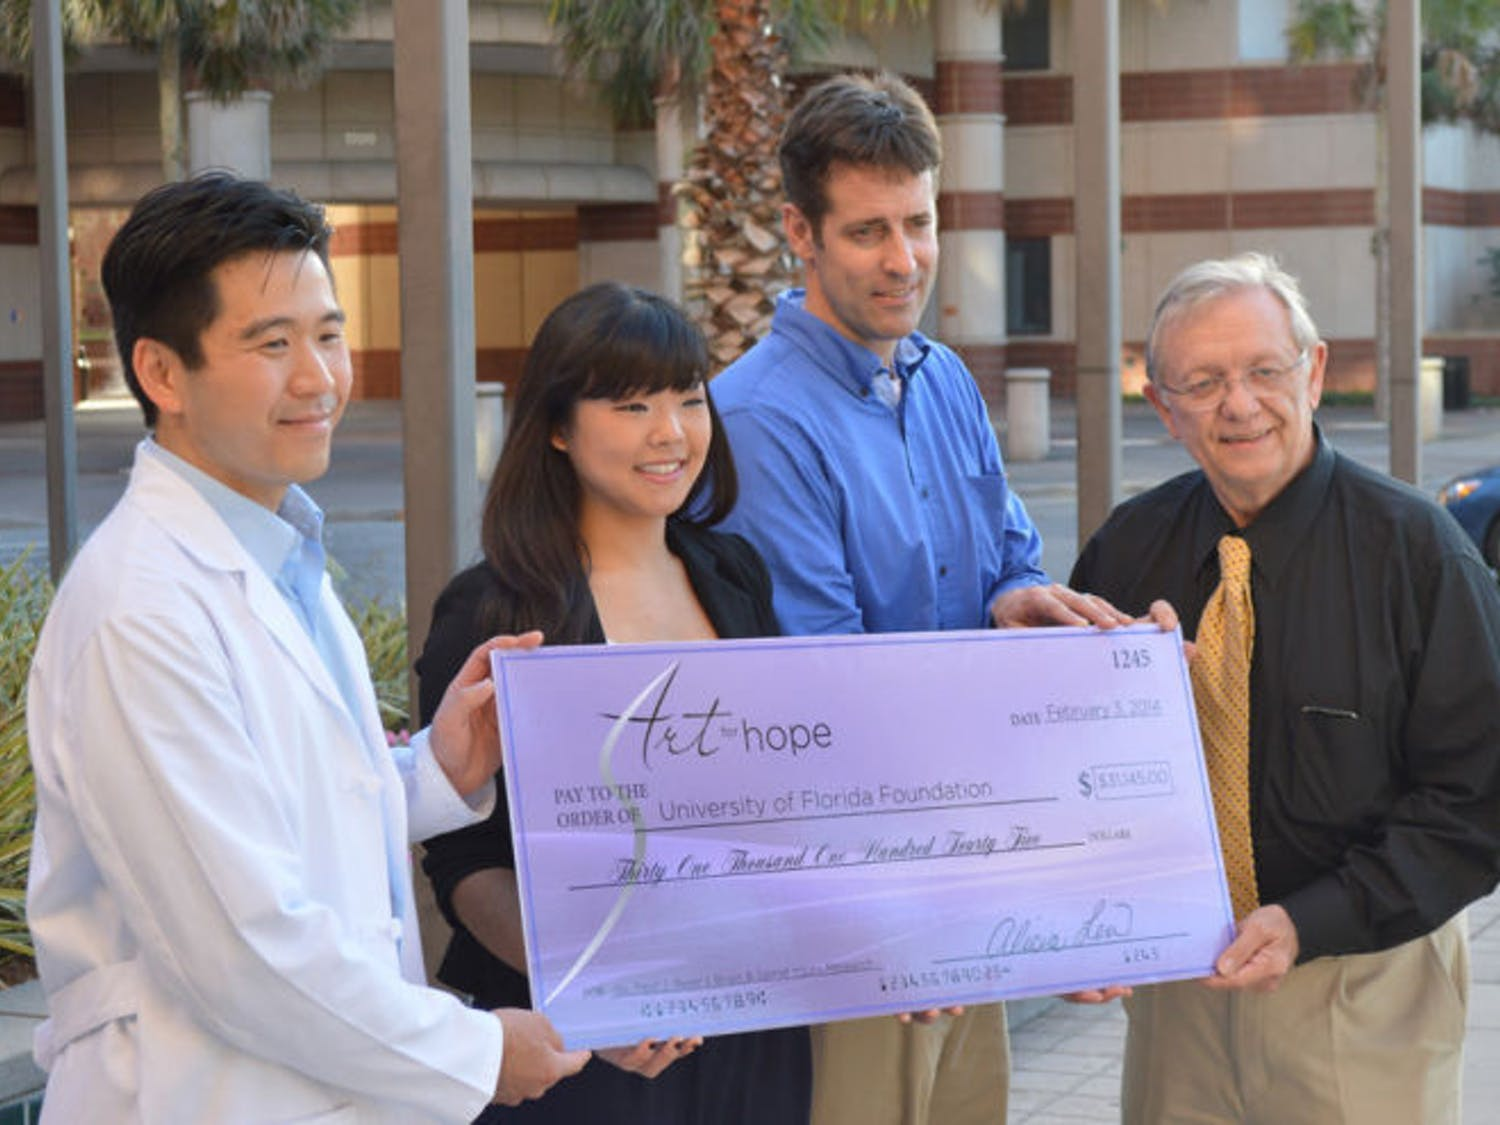 Alicia Lew presents a check on Monday afternoon at the McKnight Brain Institute to Paul J. Reier, who said he wants to buy new equipment.